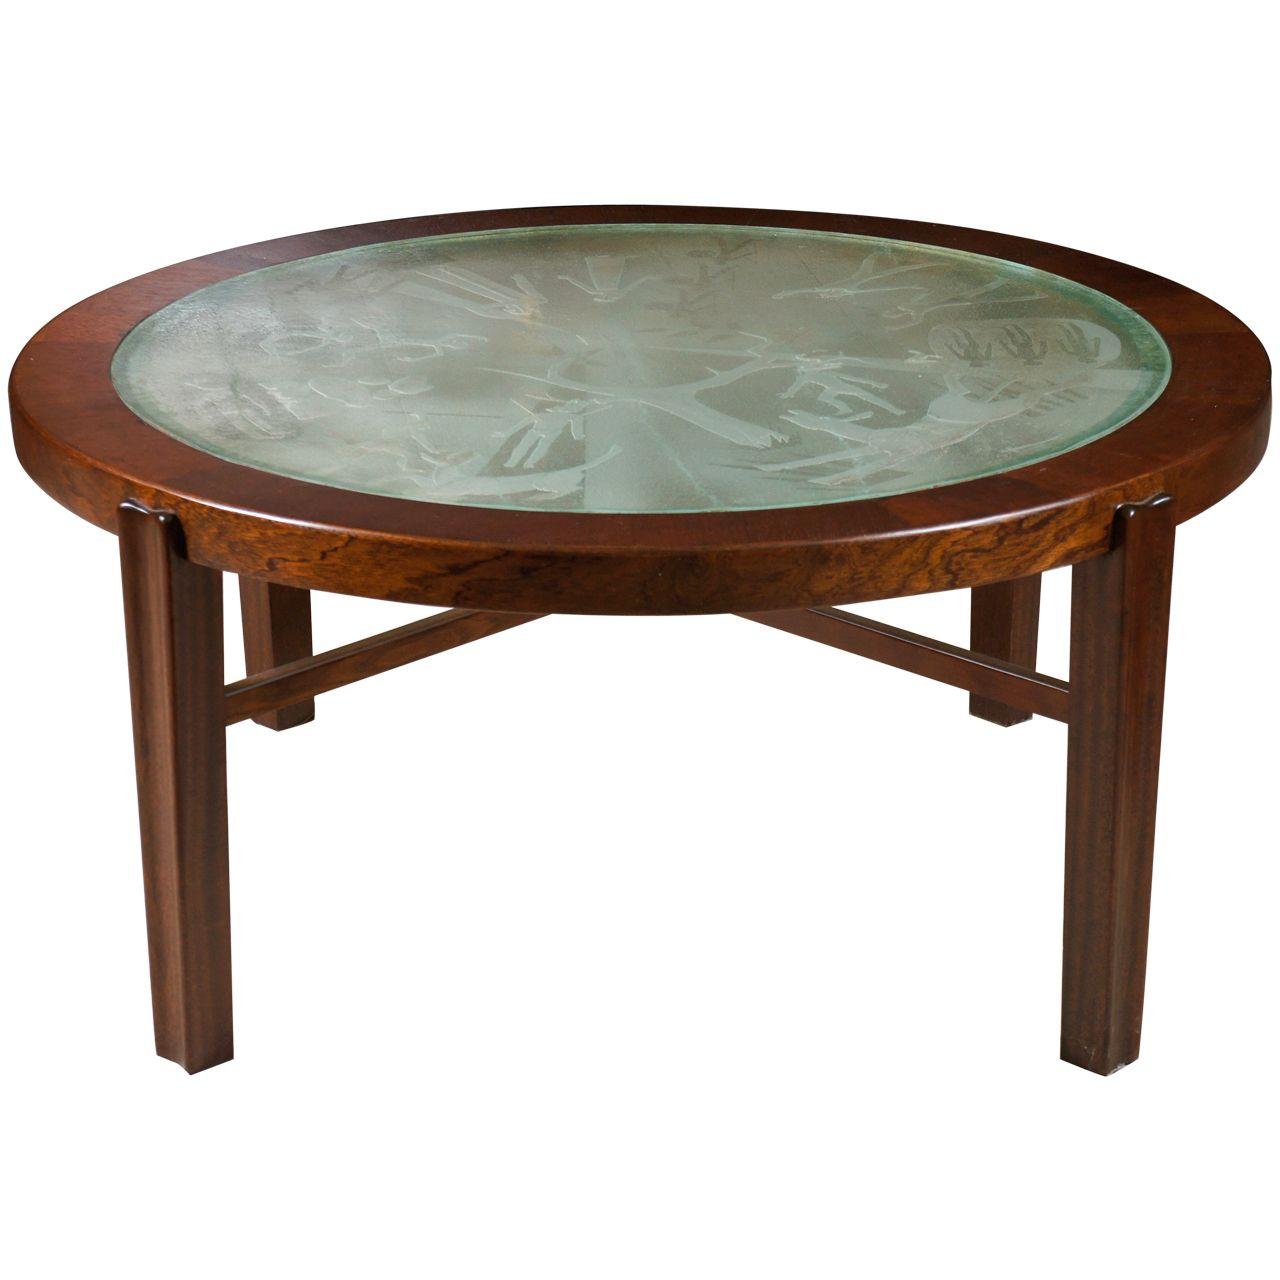 A Fine Swedish Low Coffee Table With Engraved Glass Top Low Coffee Table Glass Top Table Glass Top [ 1280 x 1280 Pixel ]